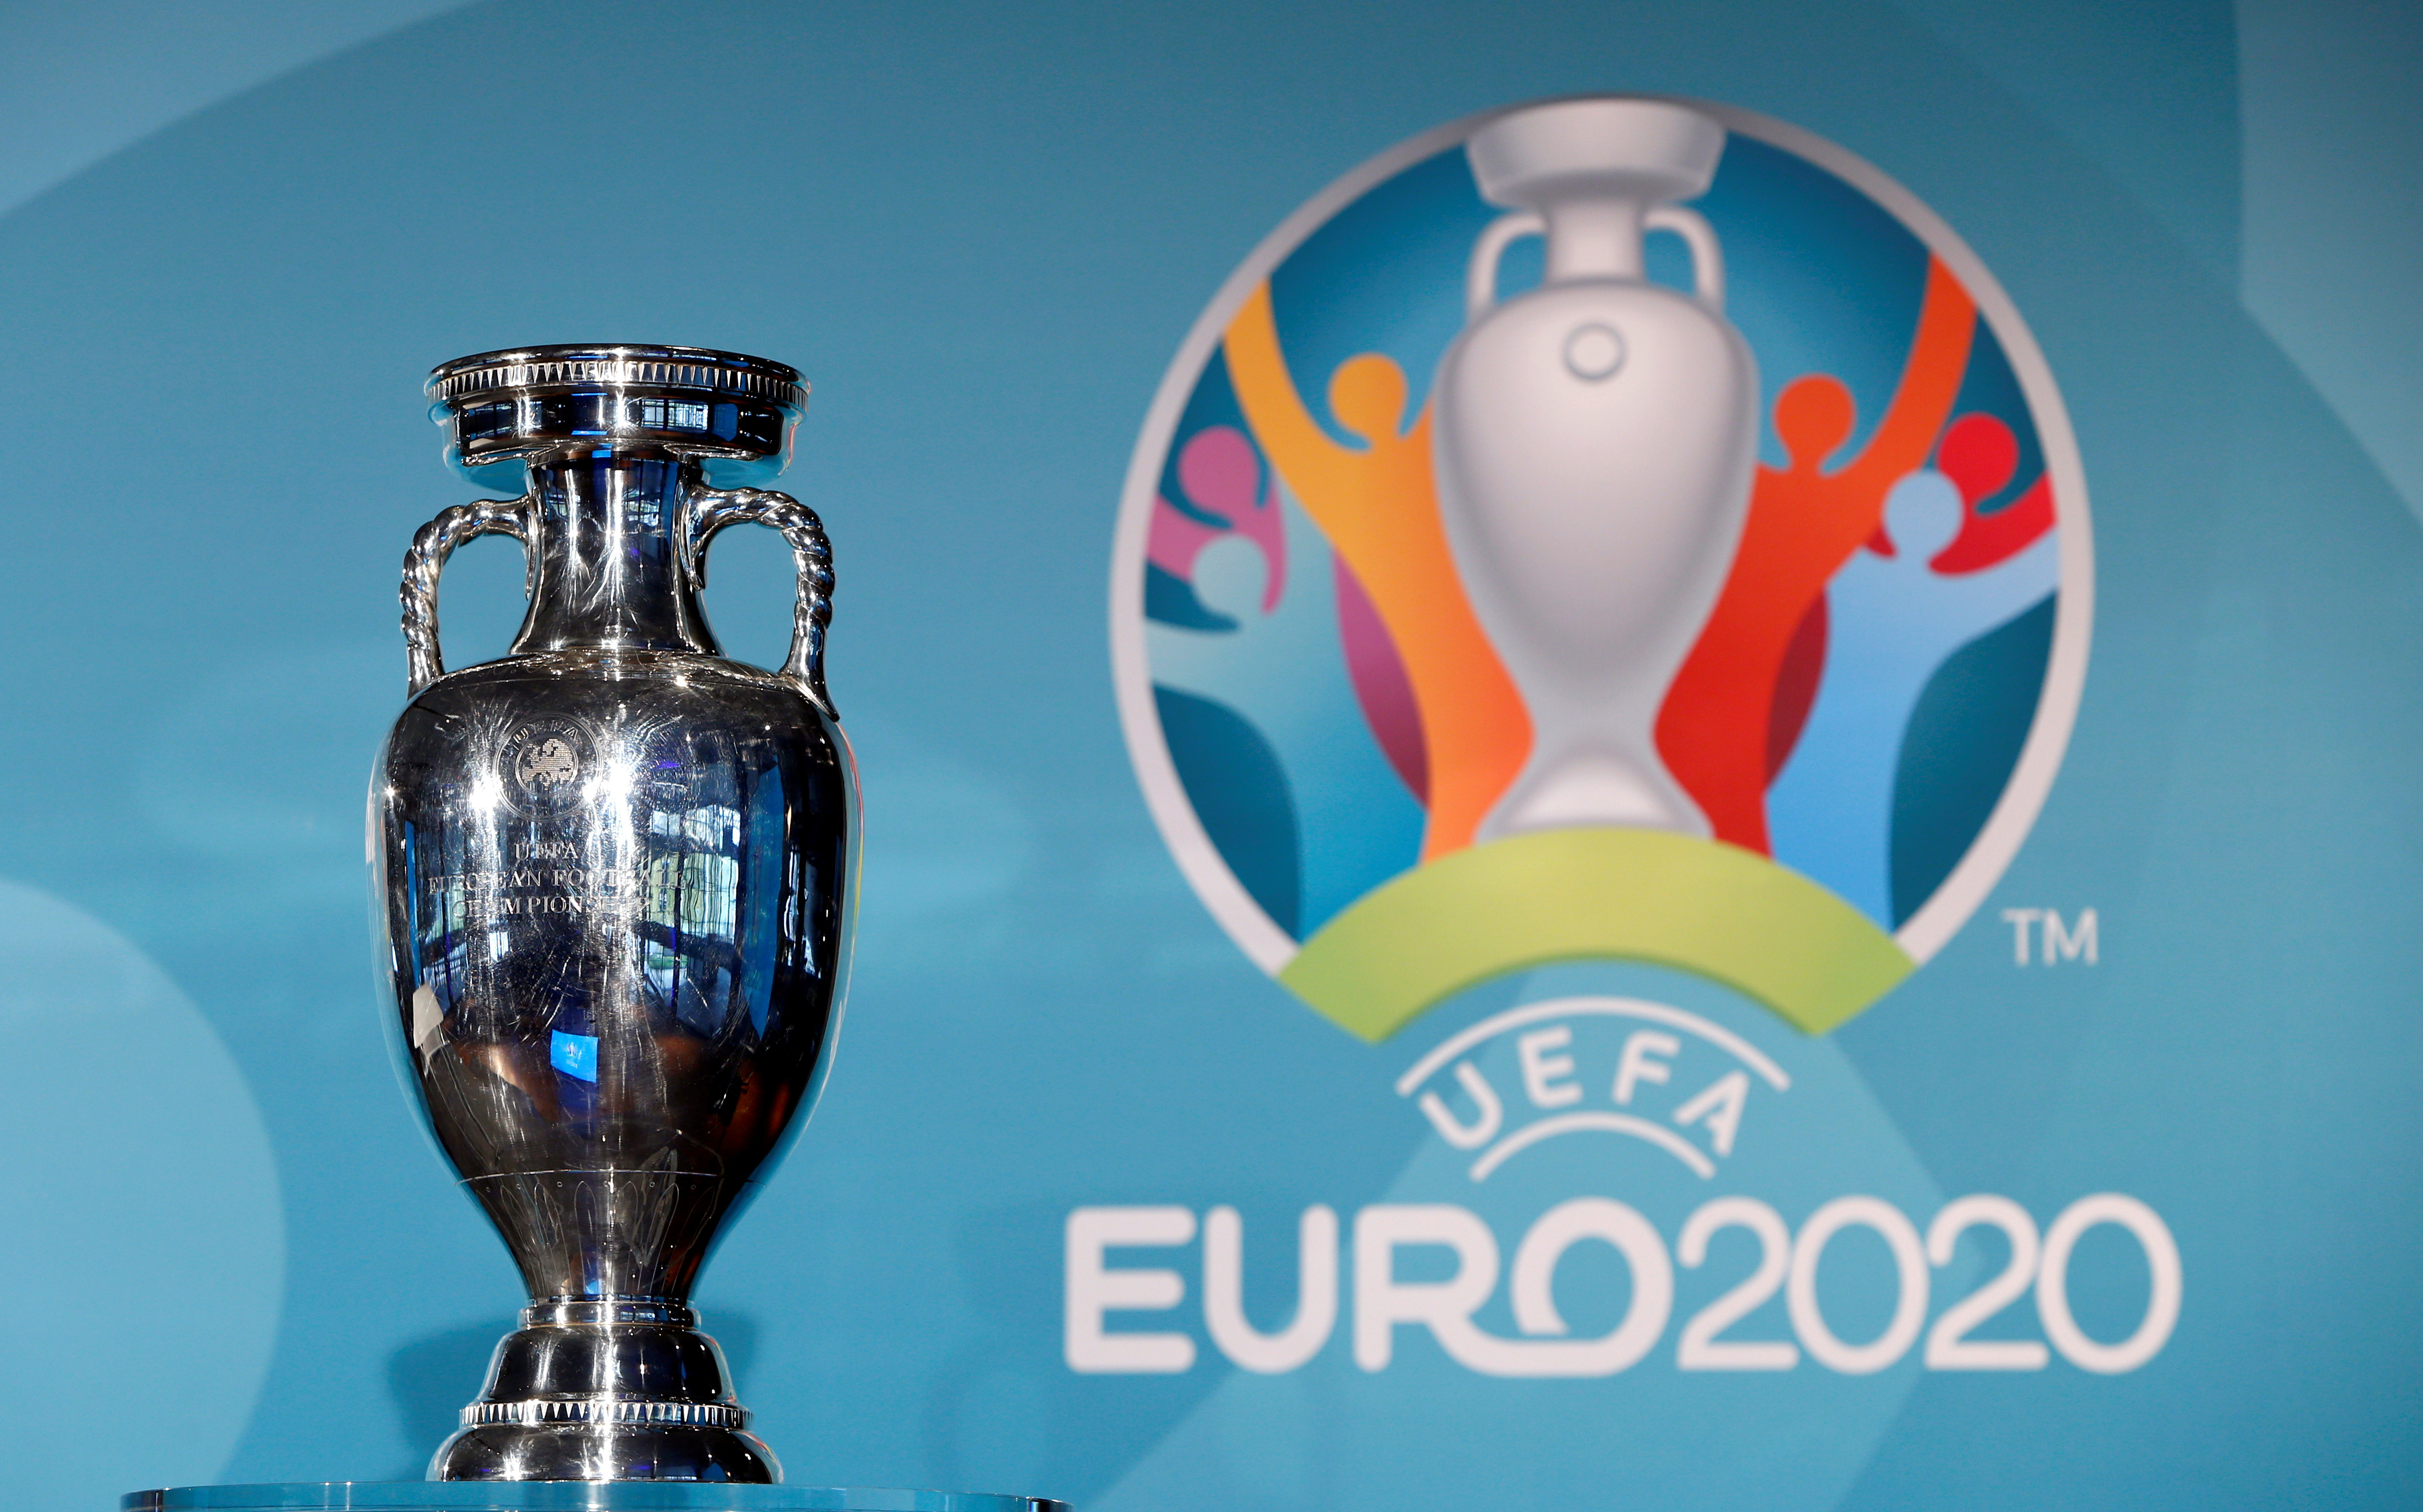 Football Soccer - UEFA Euro 2020 Munich Logo Launch - Olympia Park, Munich, Germany - 27/10/16. The trophy is seen during logo launch. REUTERS/Michaela Rehle